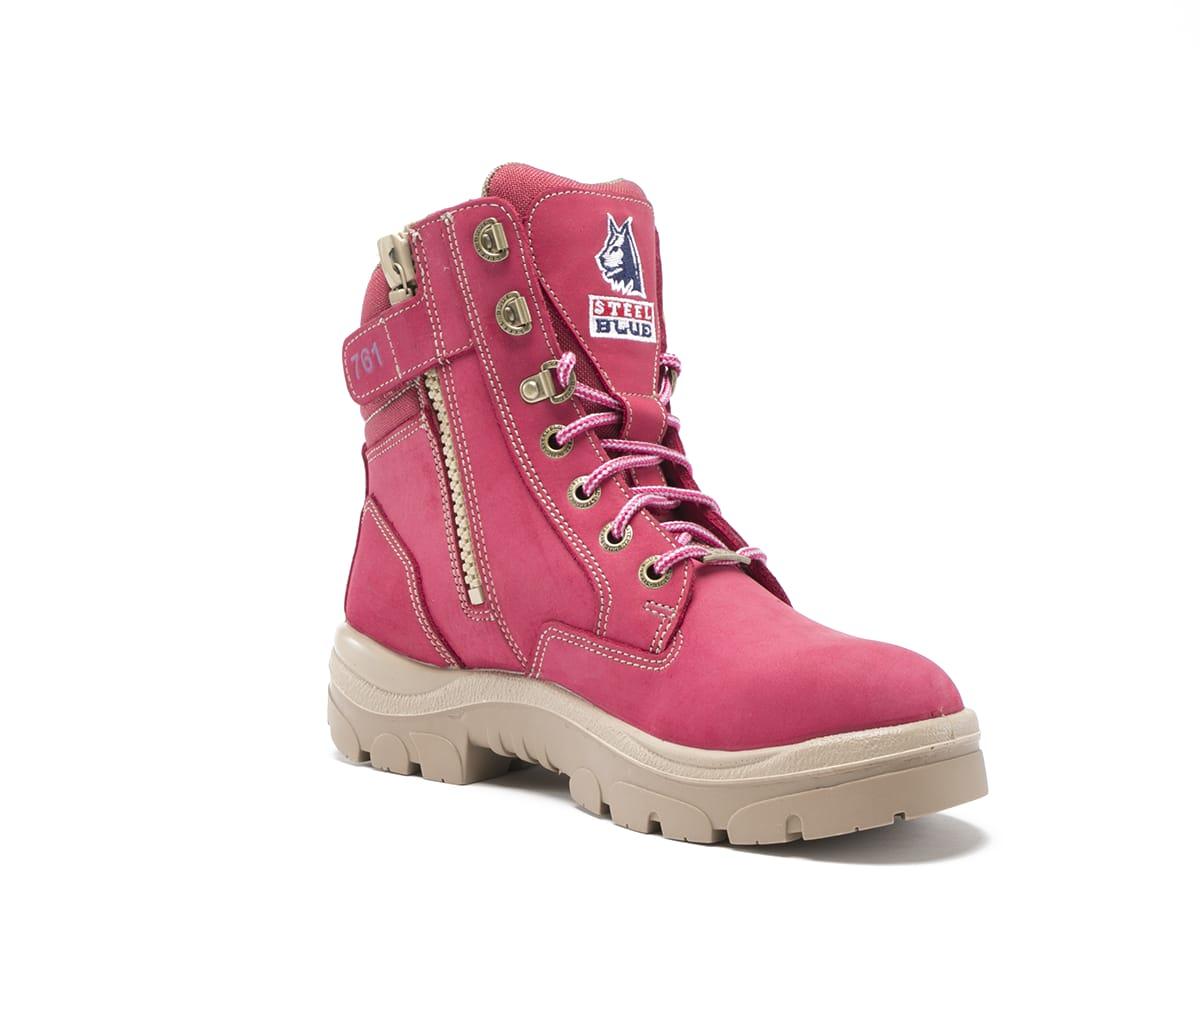 Southern Cross Zip Ladies - Pink